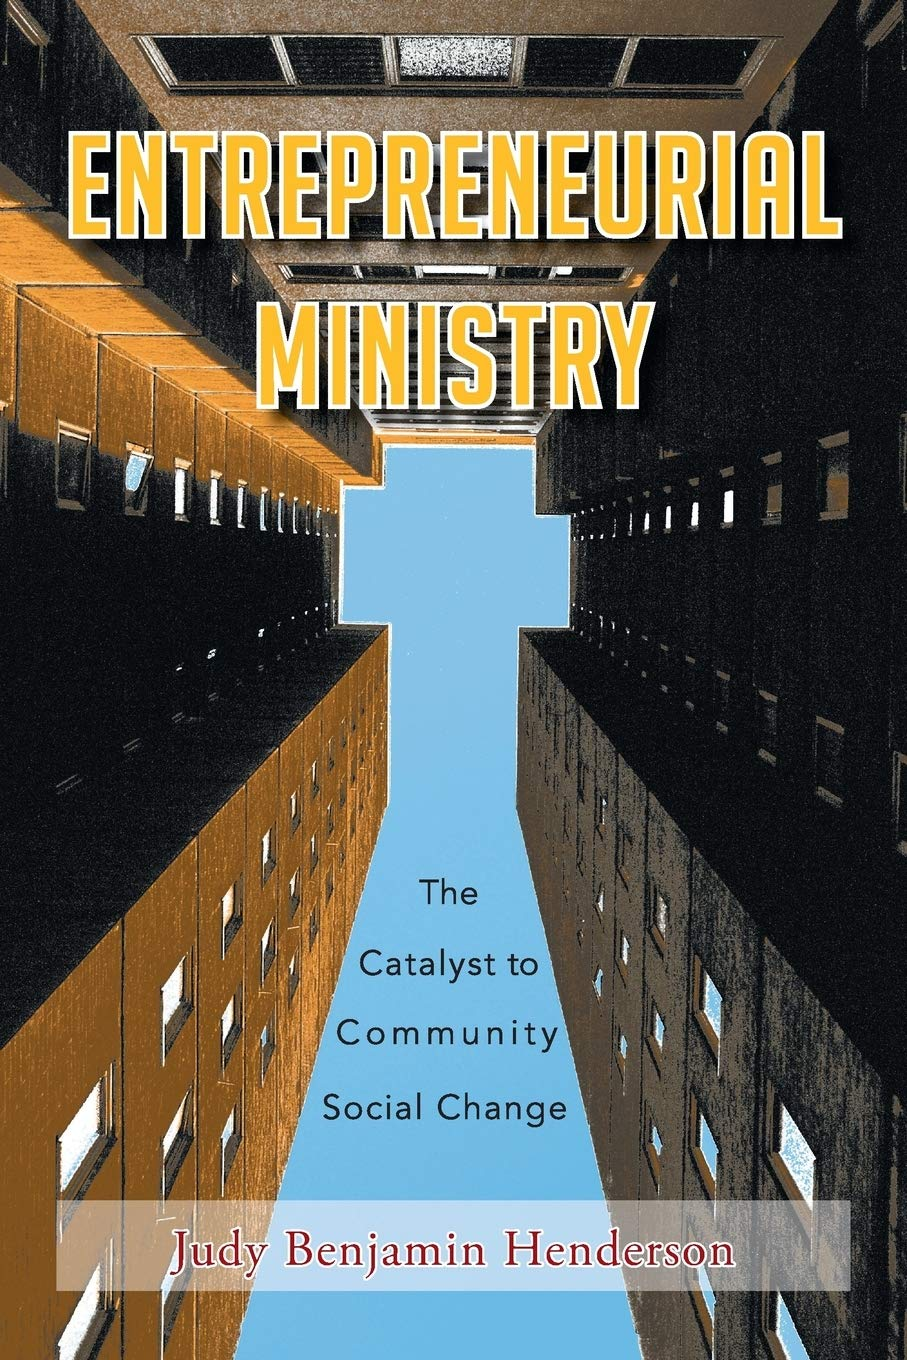 """Judy B. Henderson's """"ENTREPRENEURIAL MINISTRY: The Catalyst to Community Social Change"""" Calls for Going Beyond Duties"""